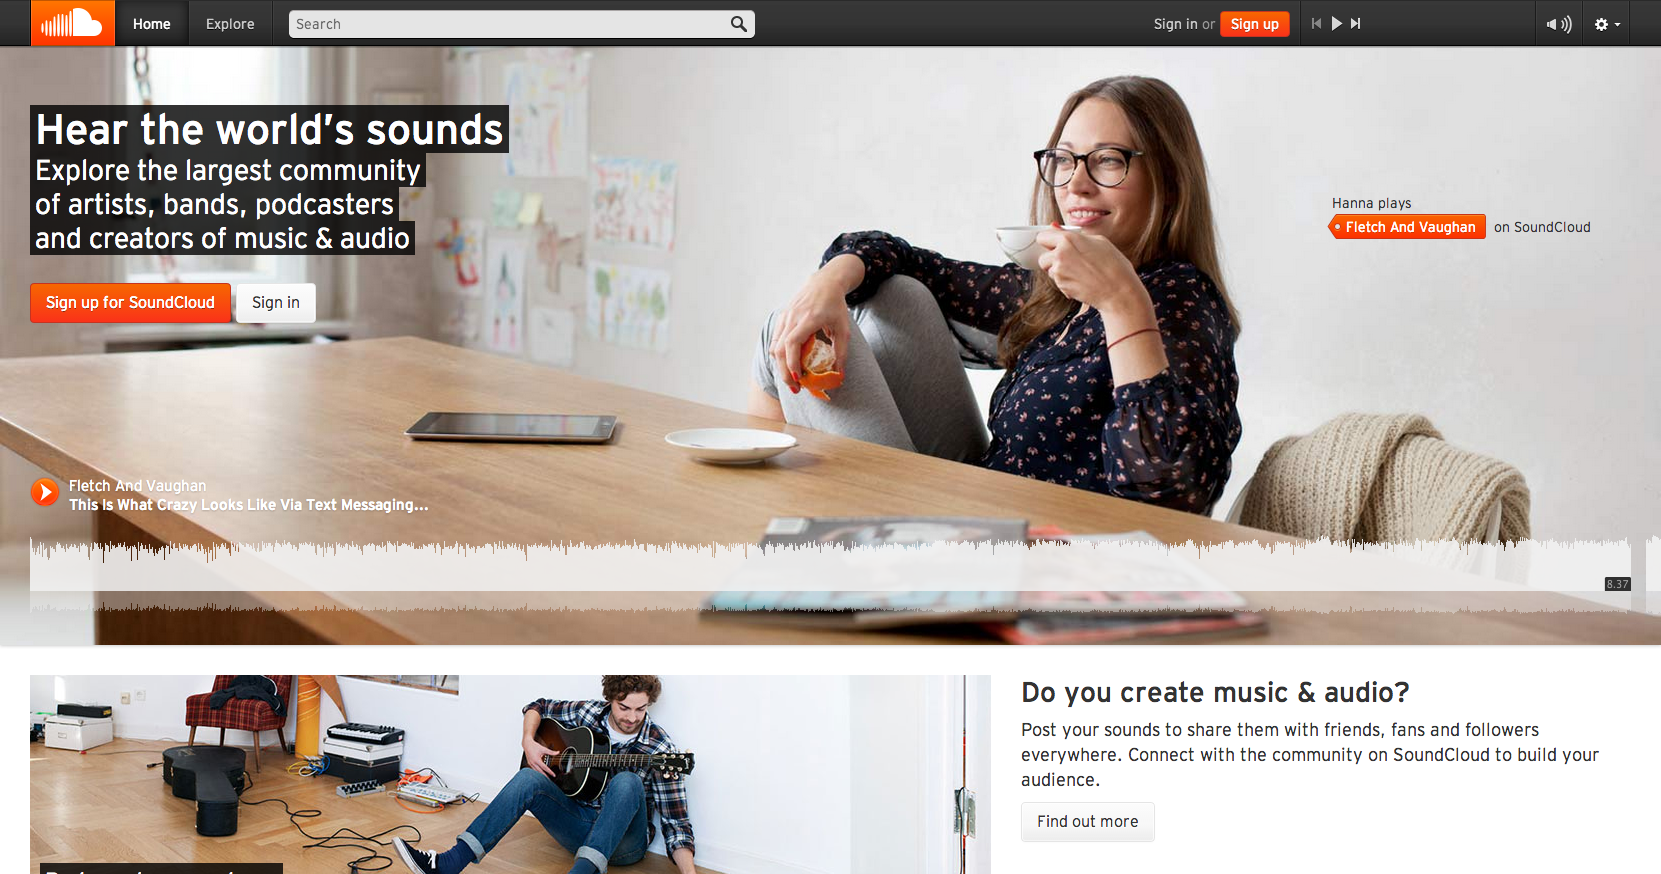 Soundcloud Homepage screenshot.